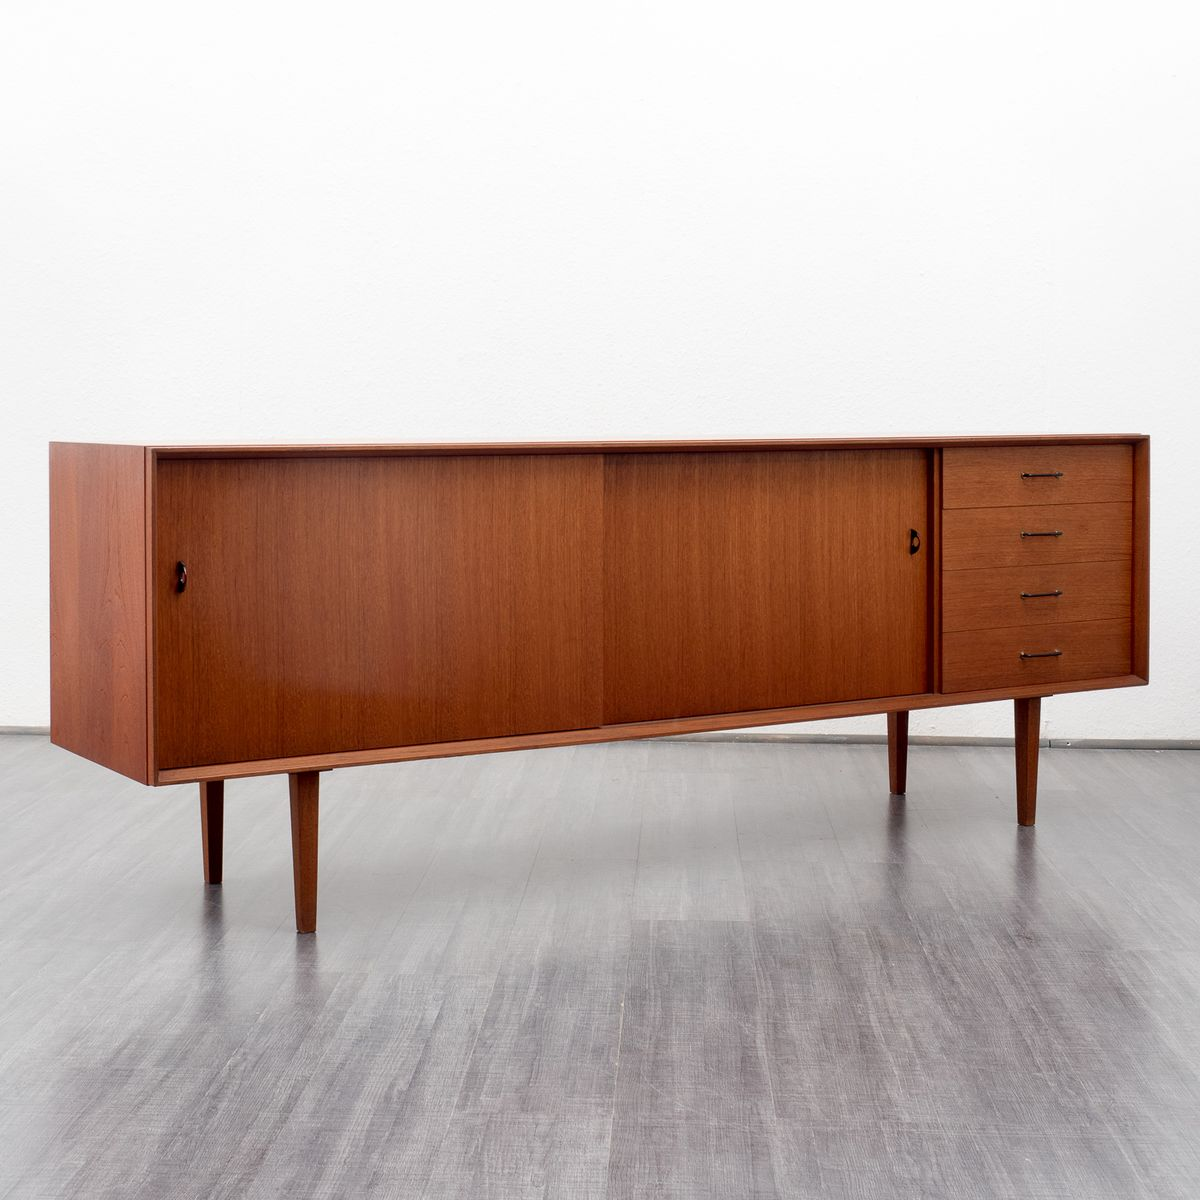 skandinavisches teak sideboard mit vier schubladen 1960er. Black Bedroom Furniture Sets. Home Design Ideas